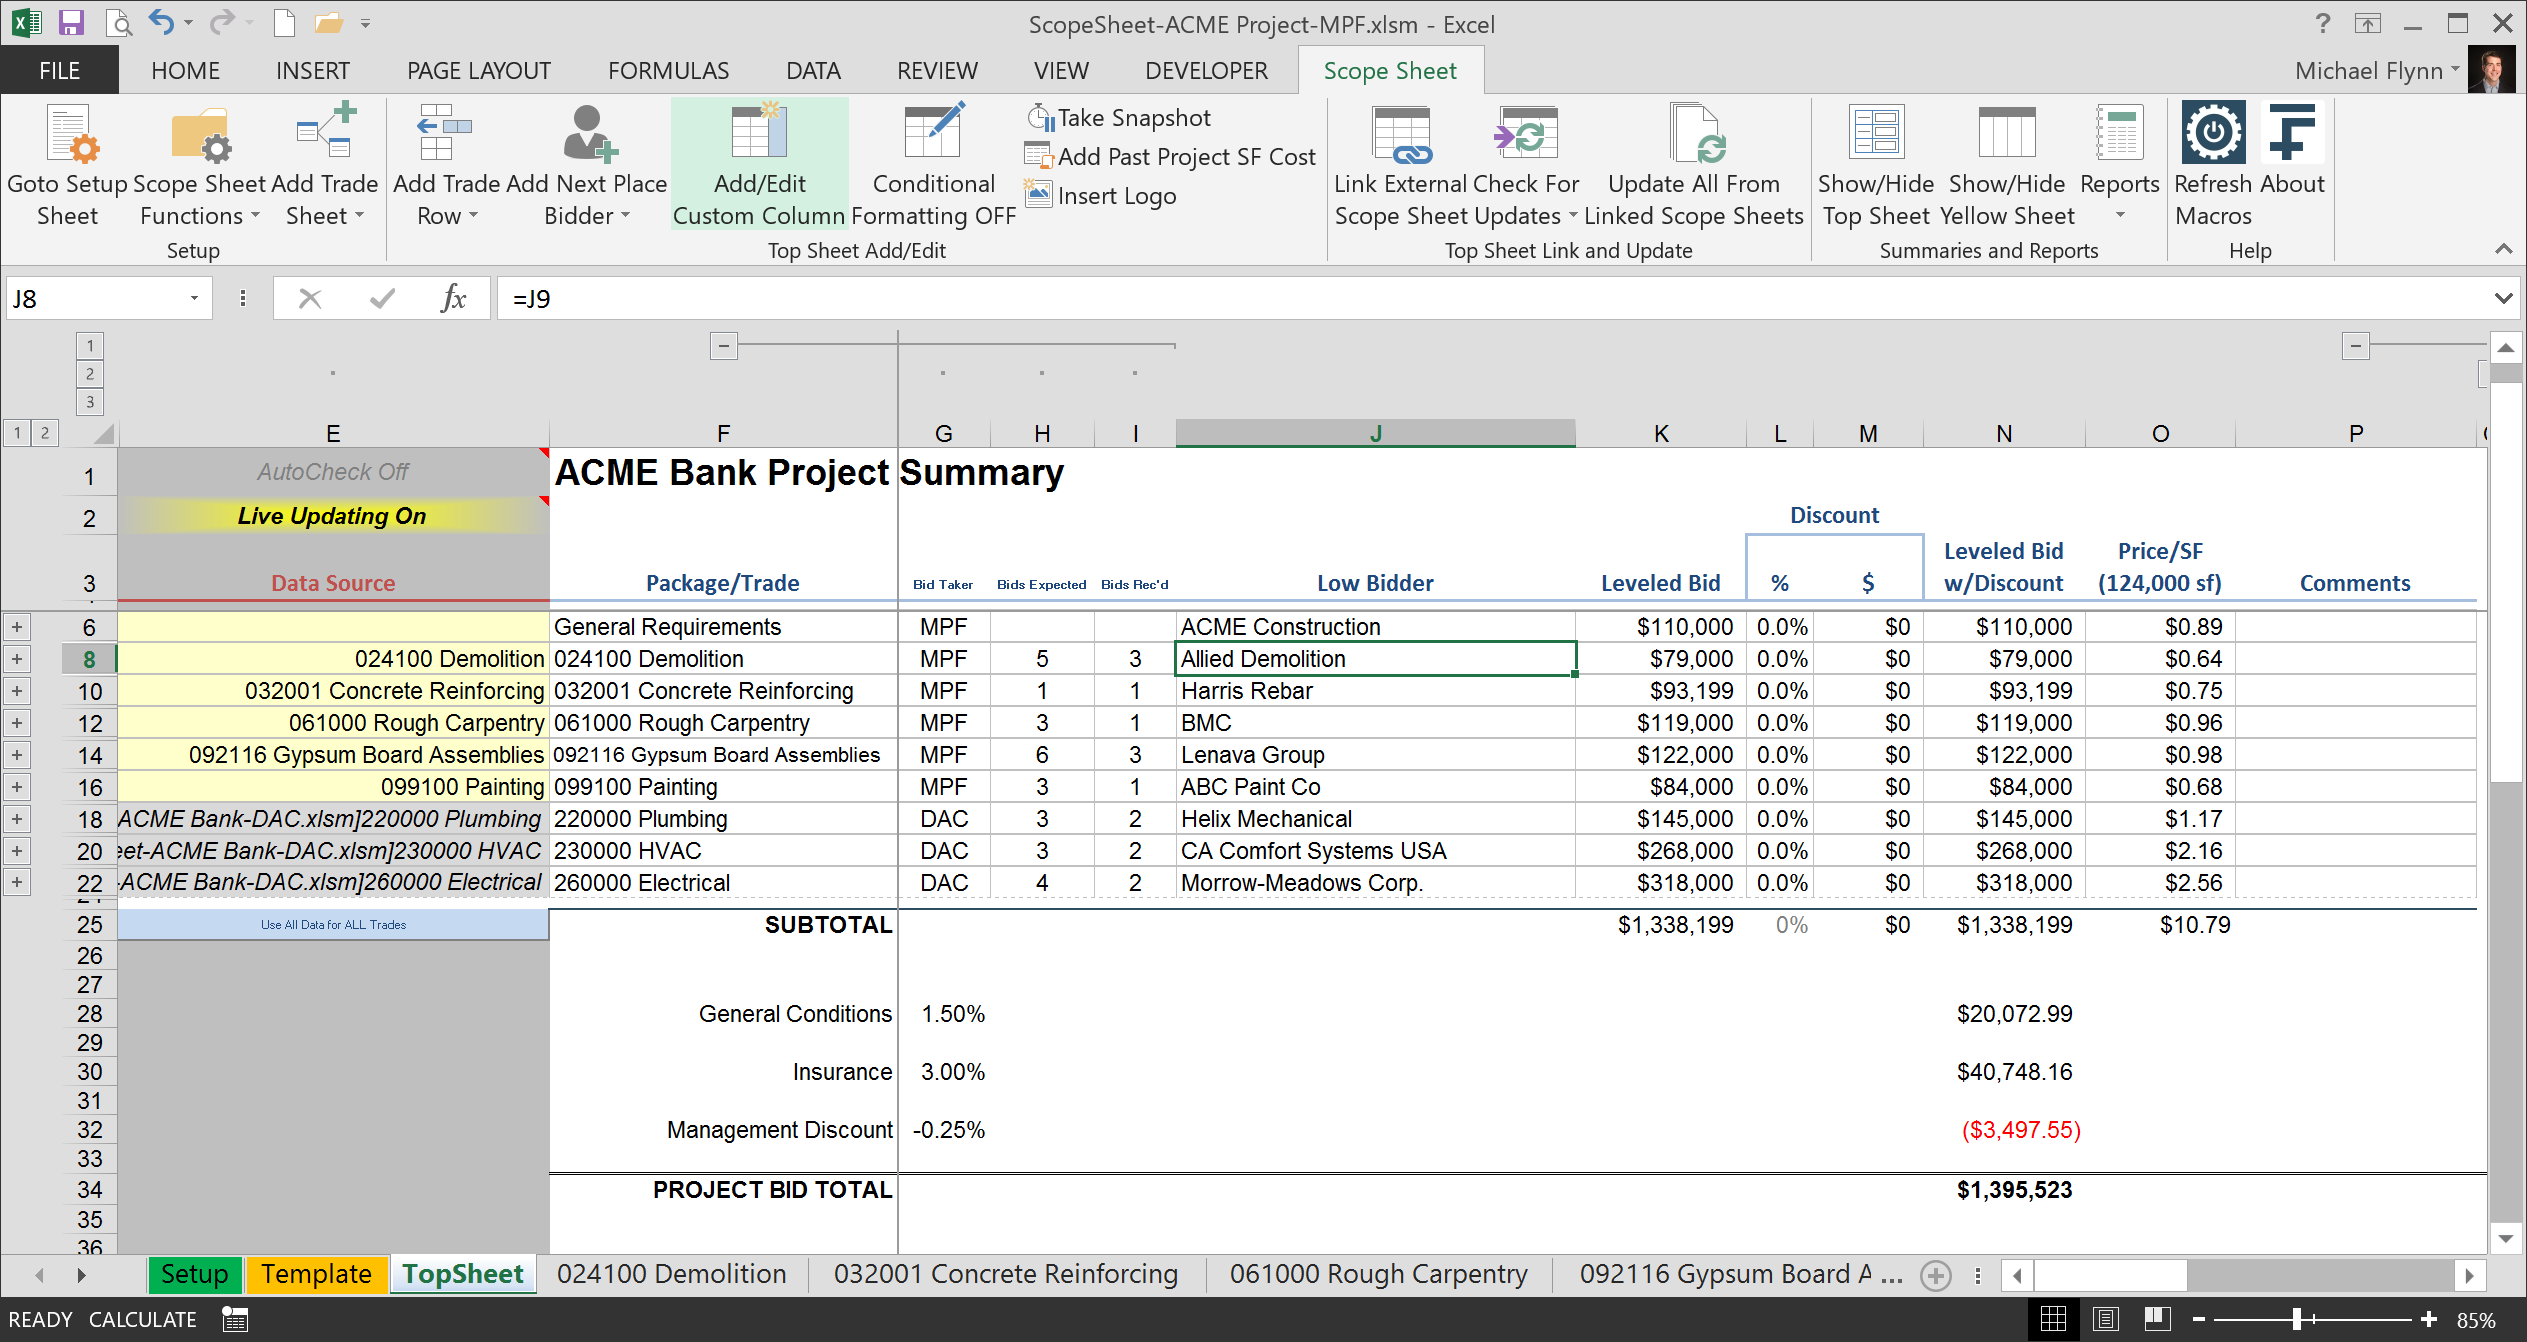 Excel Scope Sheet 14fathoms Llc Level Bids Create Project Summary